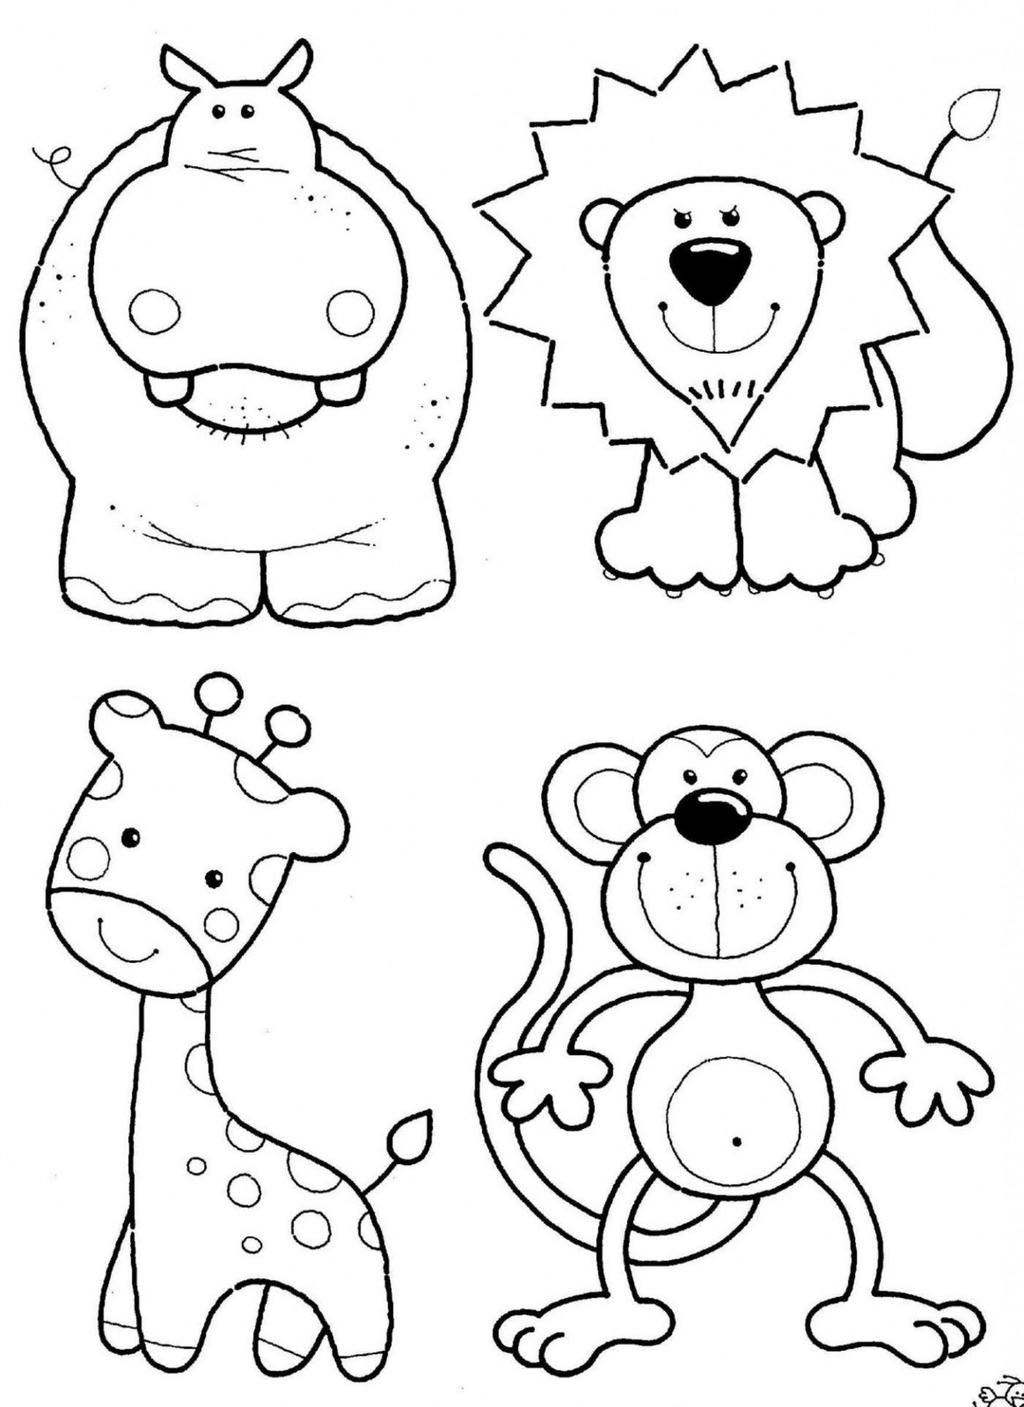 Free Jungle Animal Coloring Pages List Animals Drawings printable